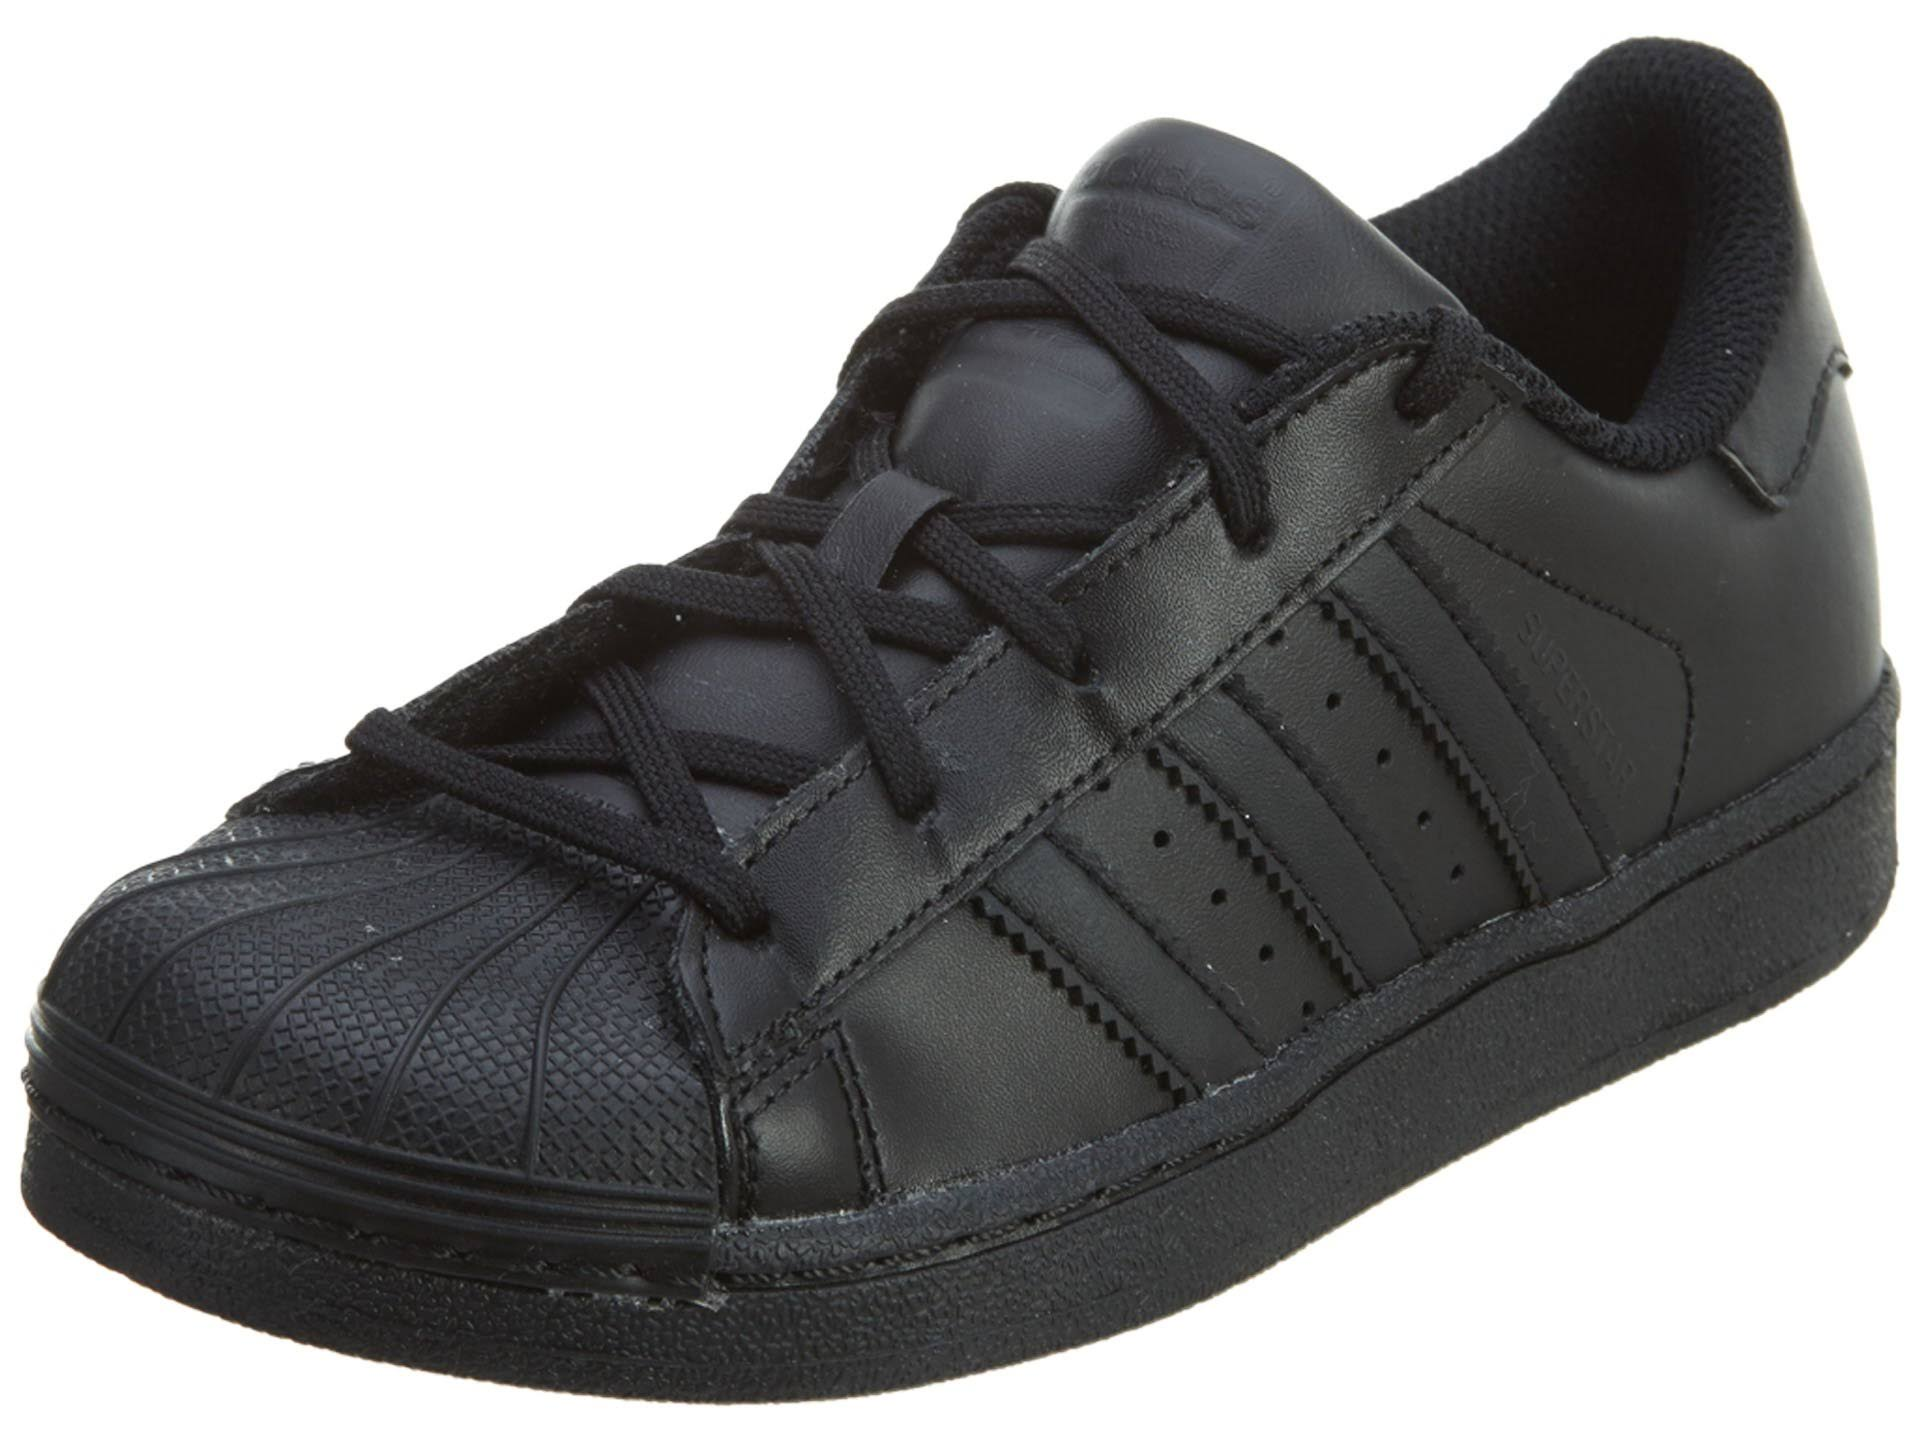 Black 3 Adidas Superstar Adidas Superstar Black 8O0wPXNnk